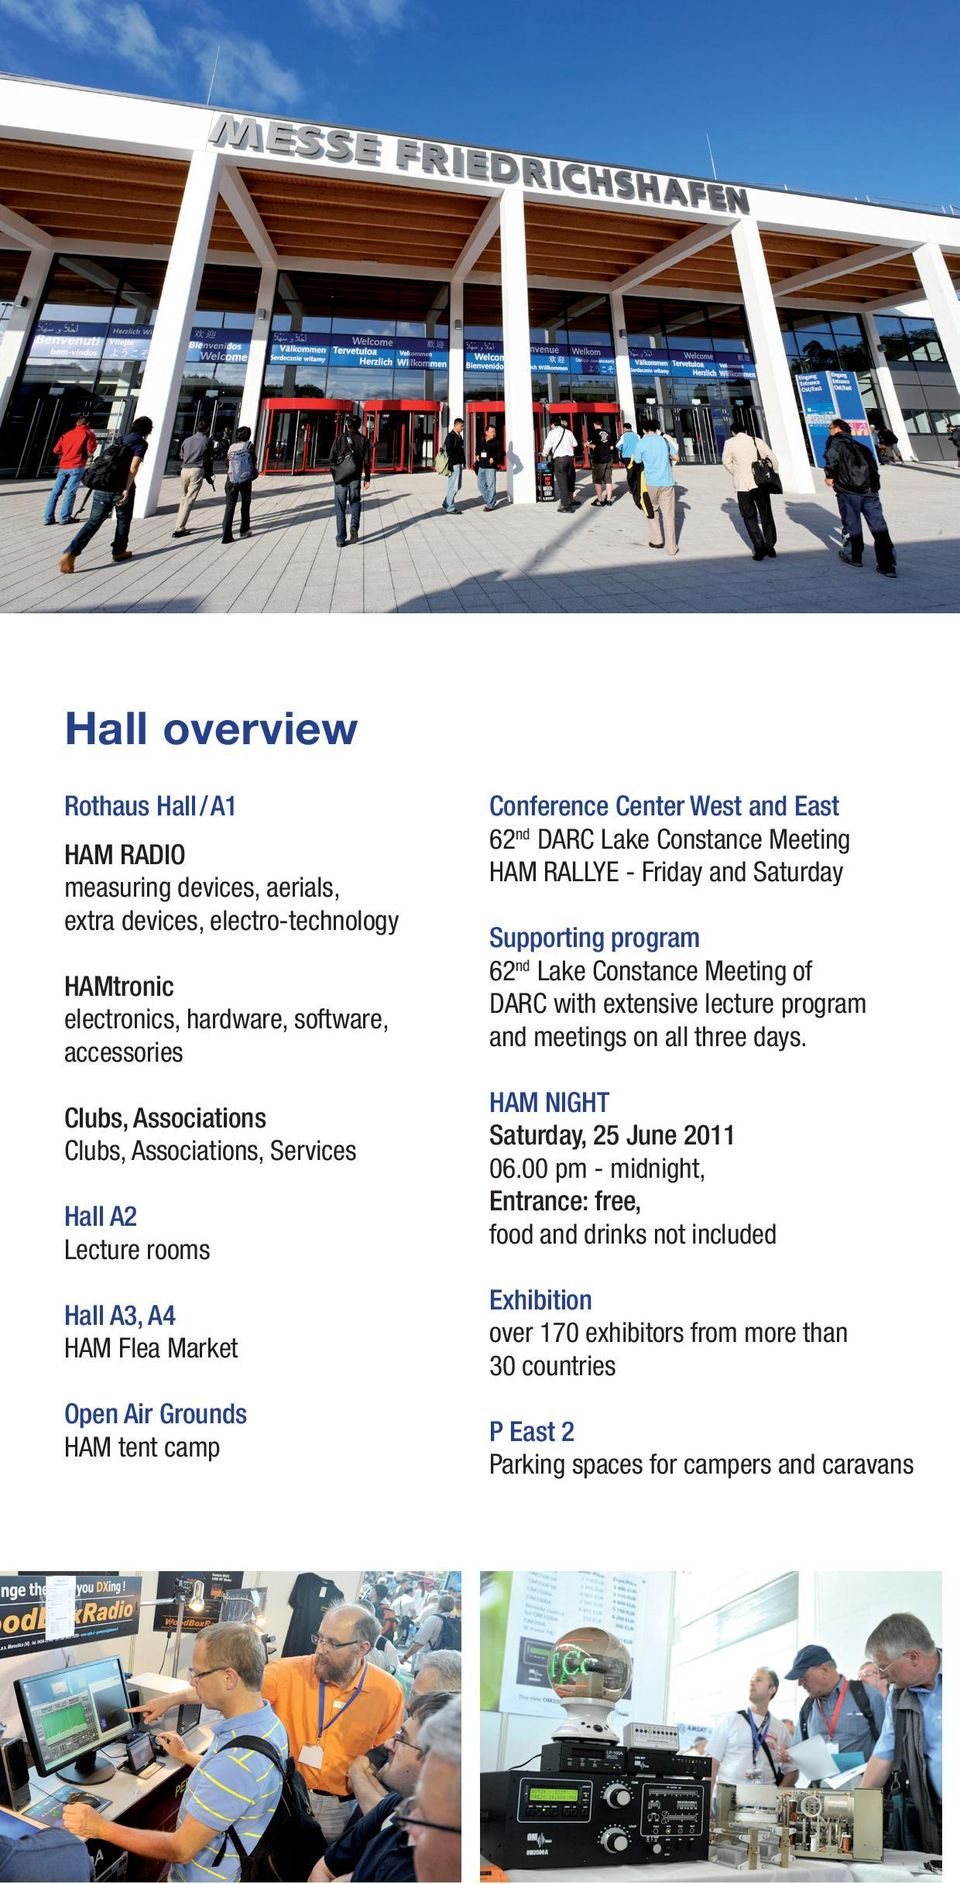 HAM RALLYE - Friday and Saturday Supporting program 62 nd Lake Constance Meeting of DARC with extensive lecture program and meetings on all three days.